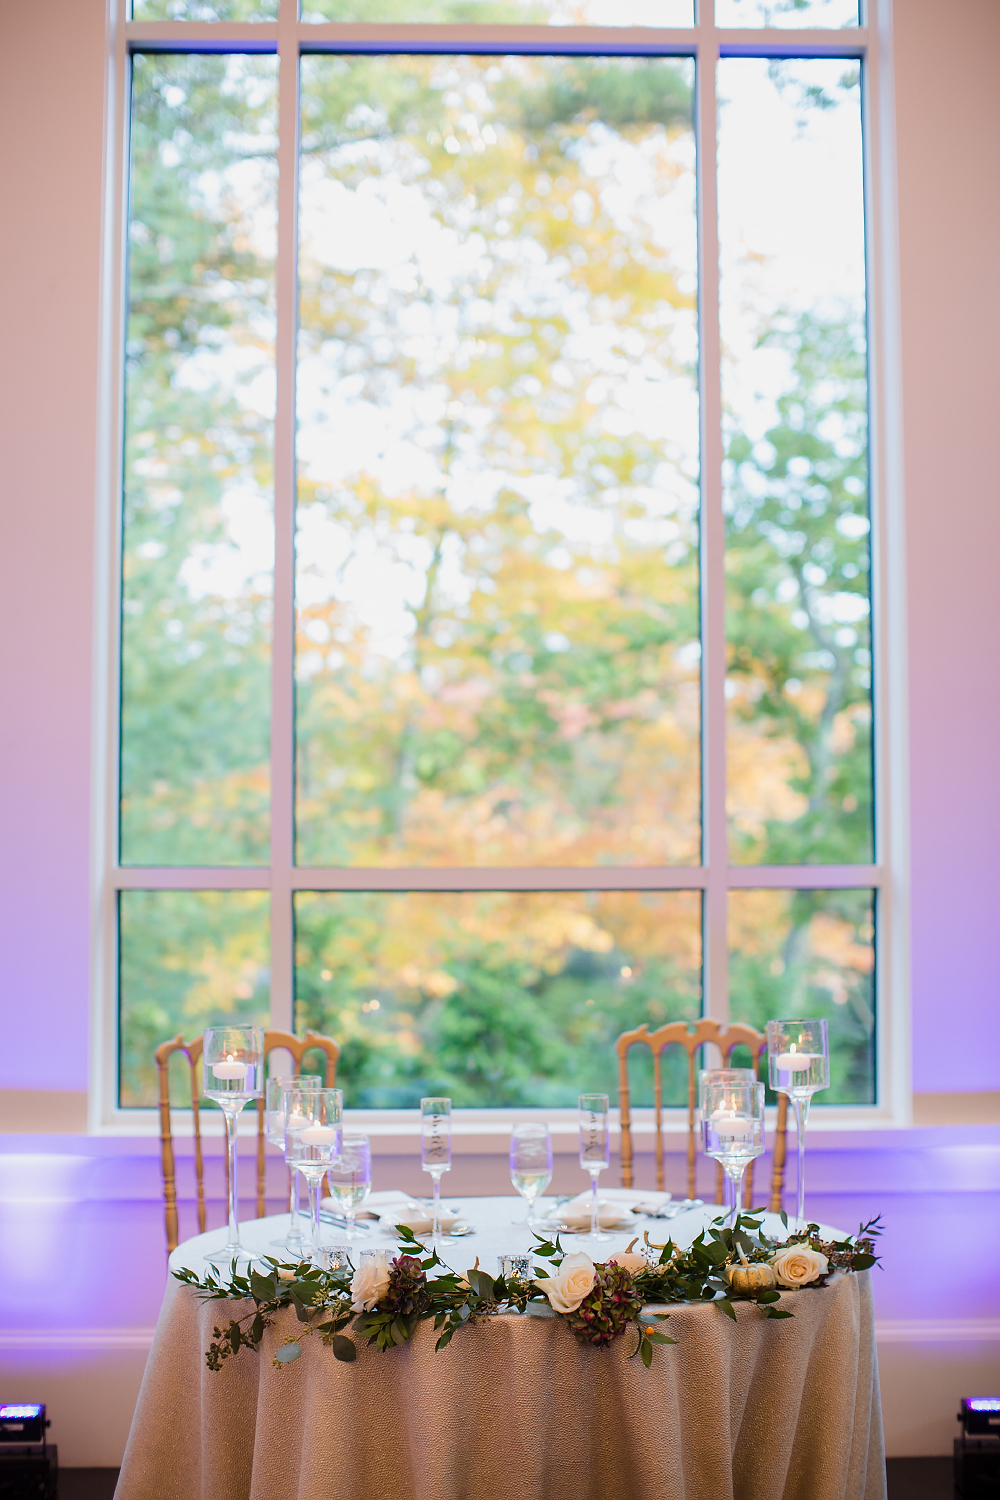 Lakeview Pavilion Wedding Decor Price